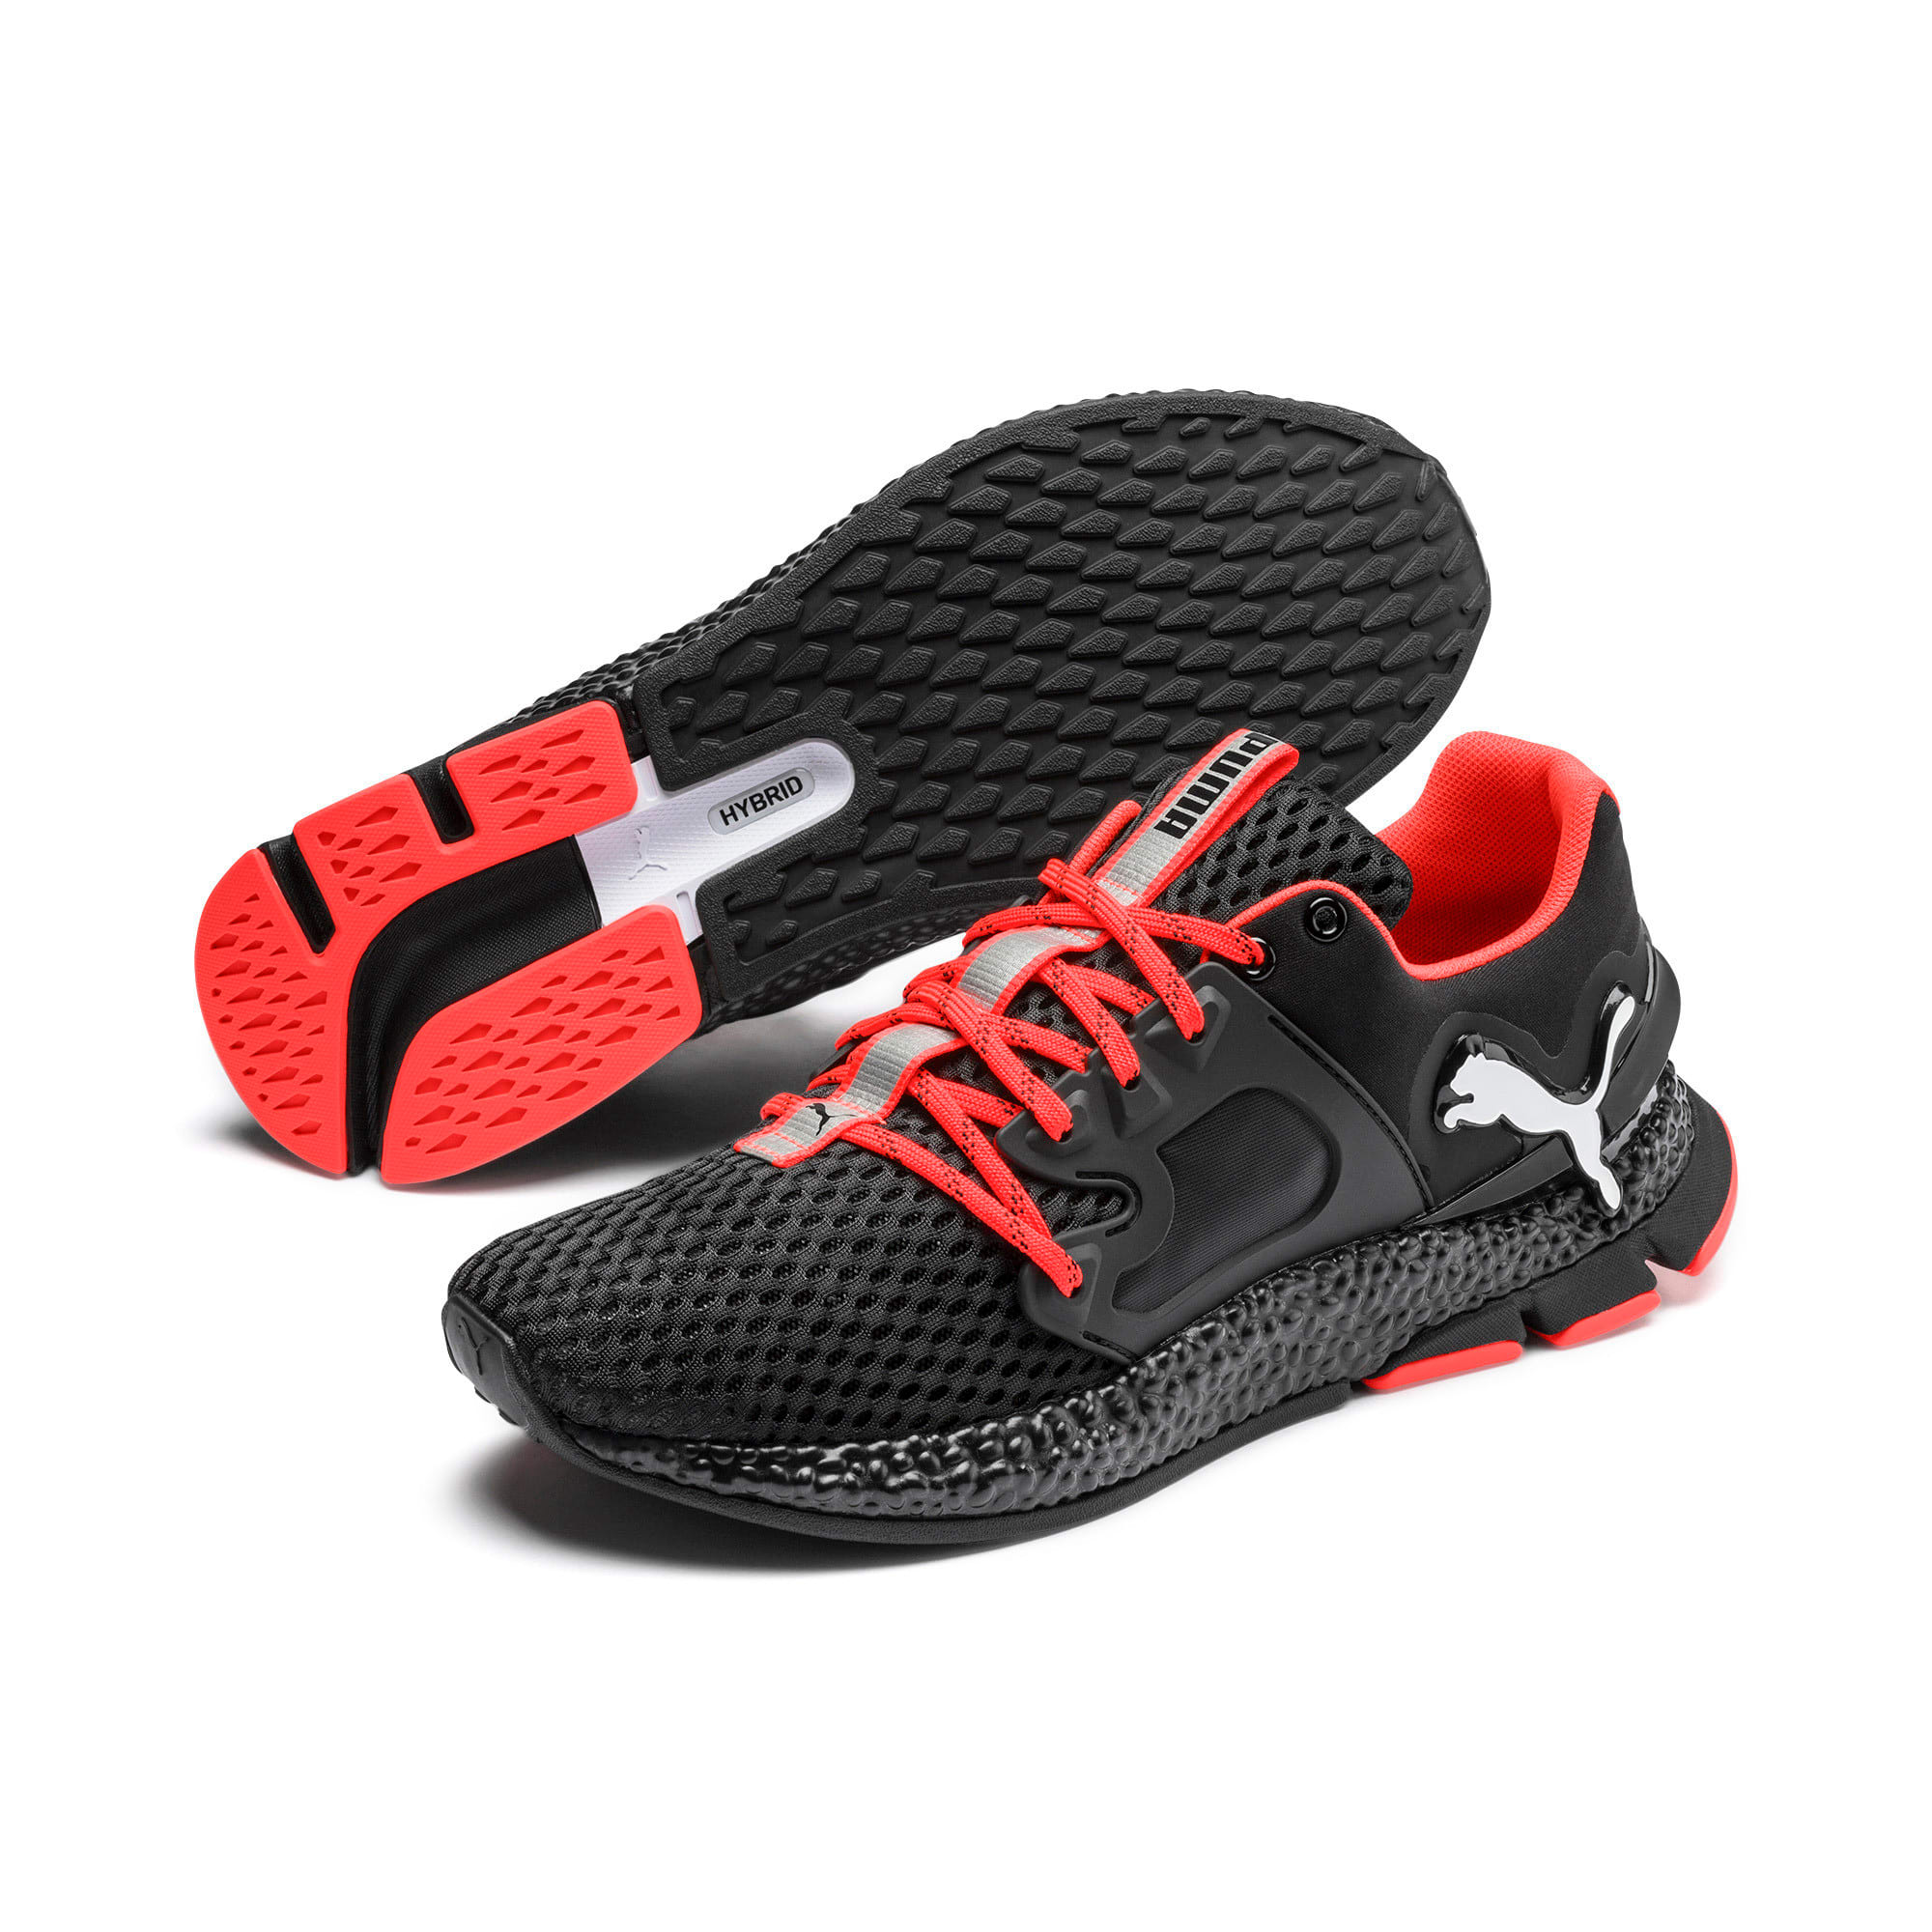 HYBRID Sky Men's Running Shoes, Black-White-Nrgy Red, large